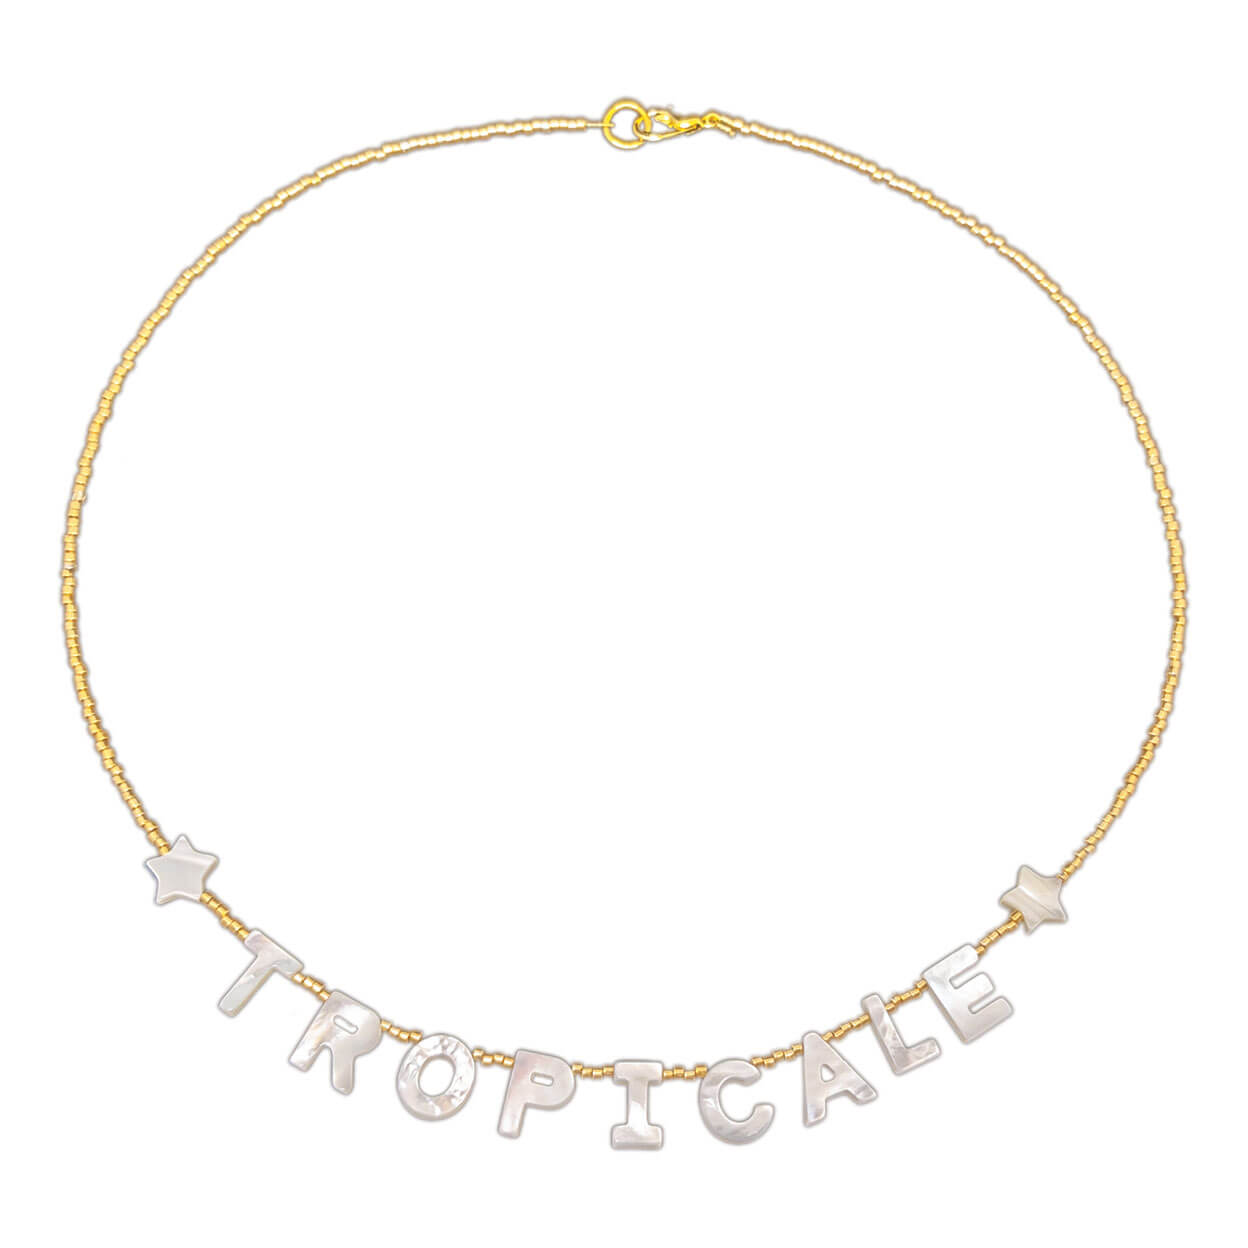 "tropical style necklace with mother of pearl letters that reads ""tropicale"" with seed bead strand"